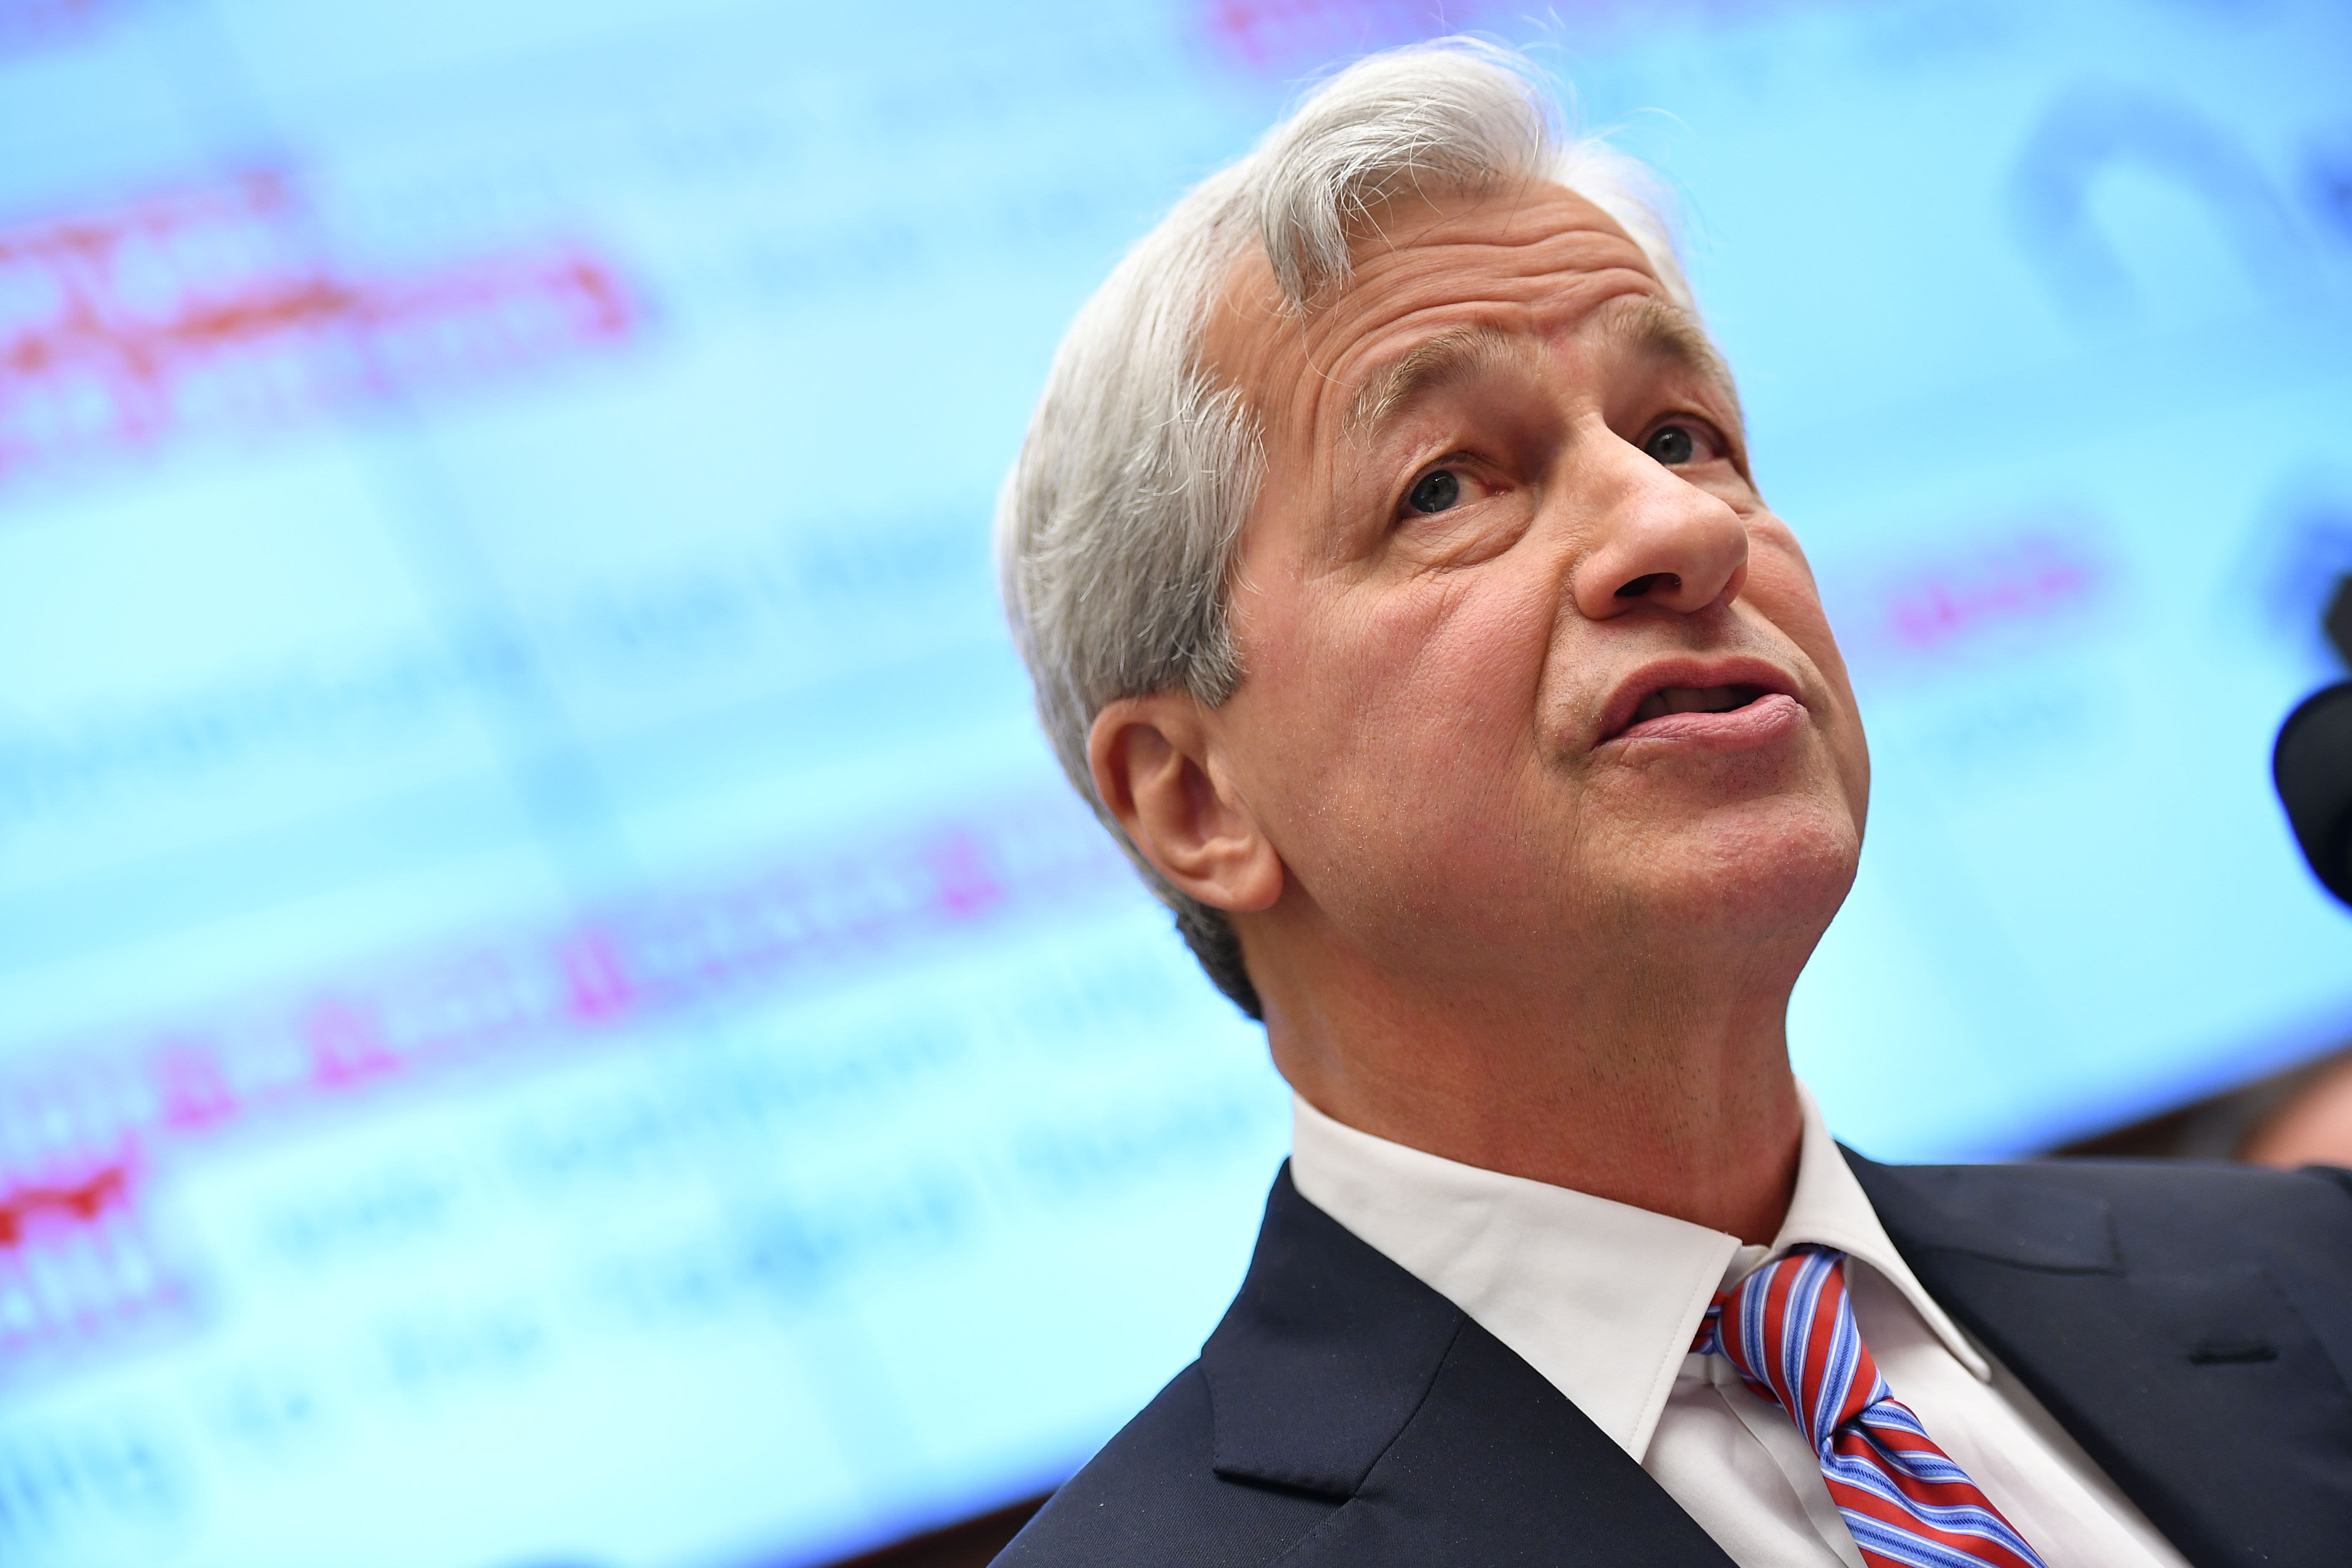 Jamie Dimon warns US-China trade fight becoming a 'real issue' that could deter investment